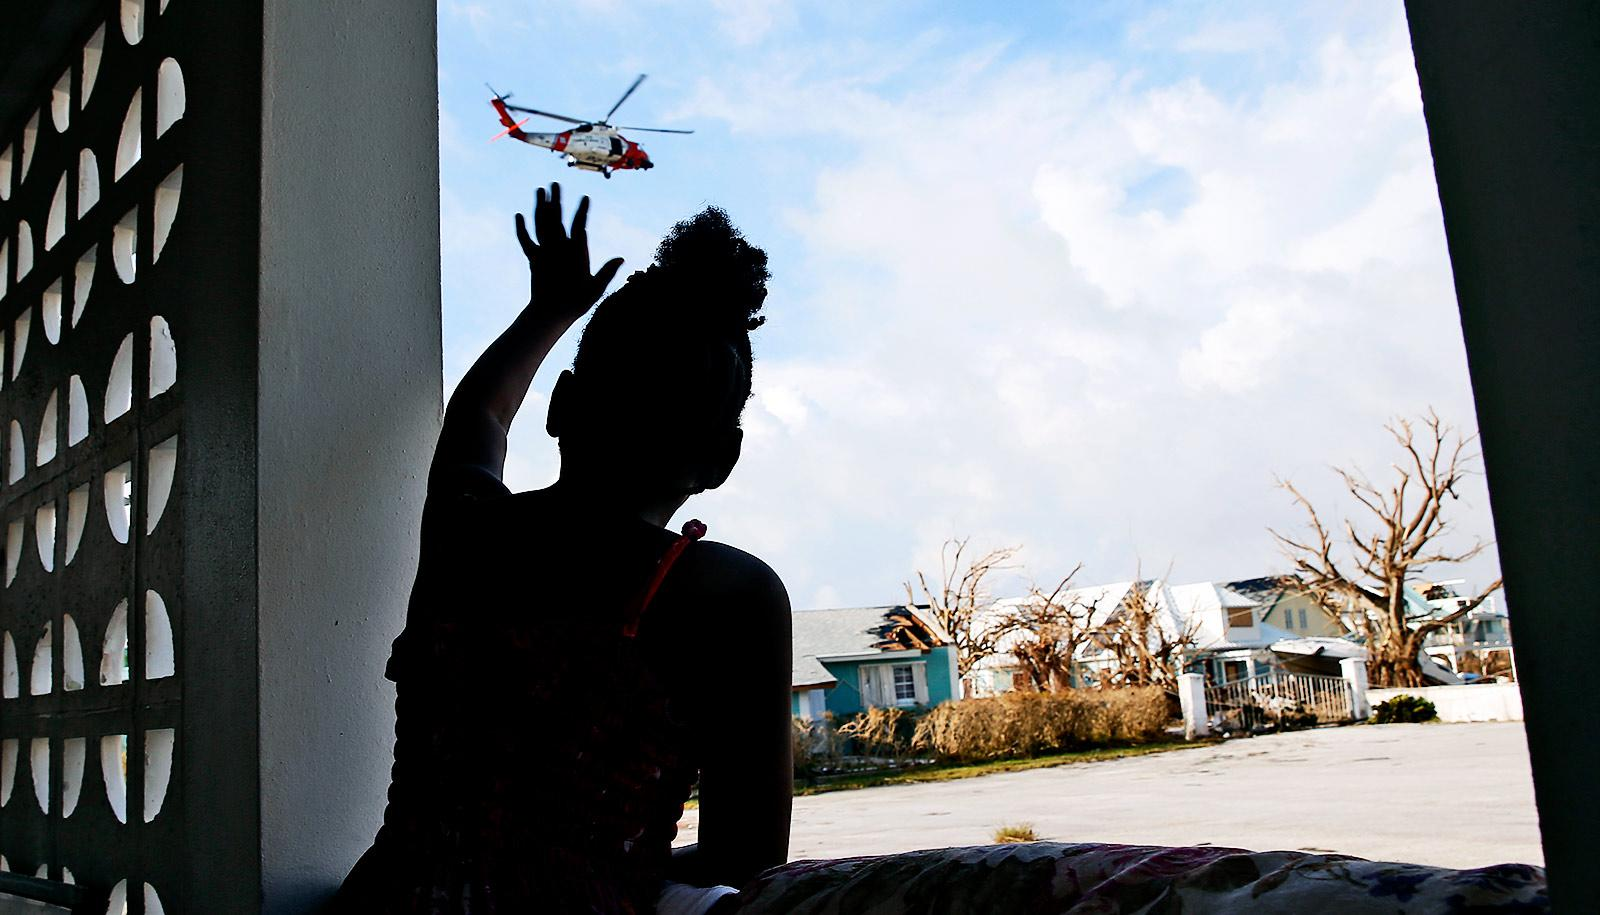 A young girl reaches up out of a window towards a rescue helicopter while in the background there are houses that have been damaged in the hurricane and a flooded street